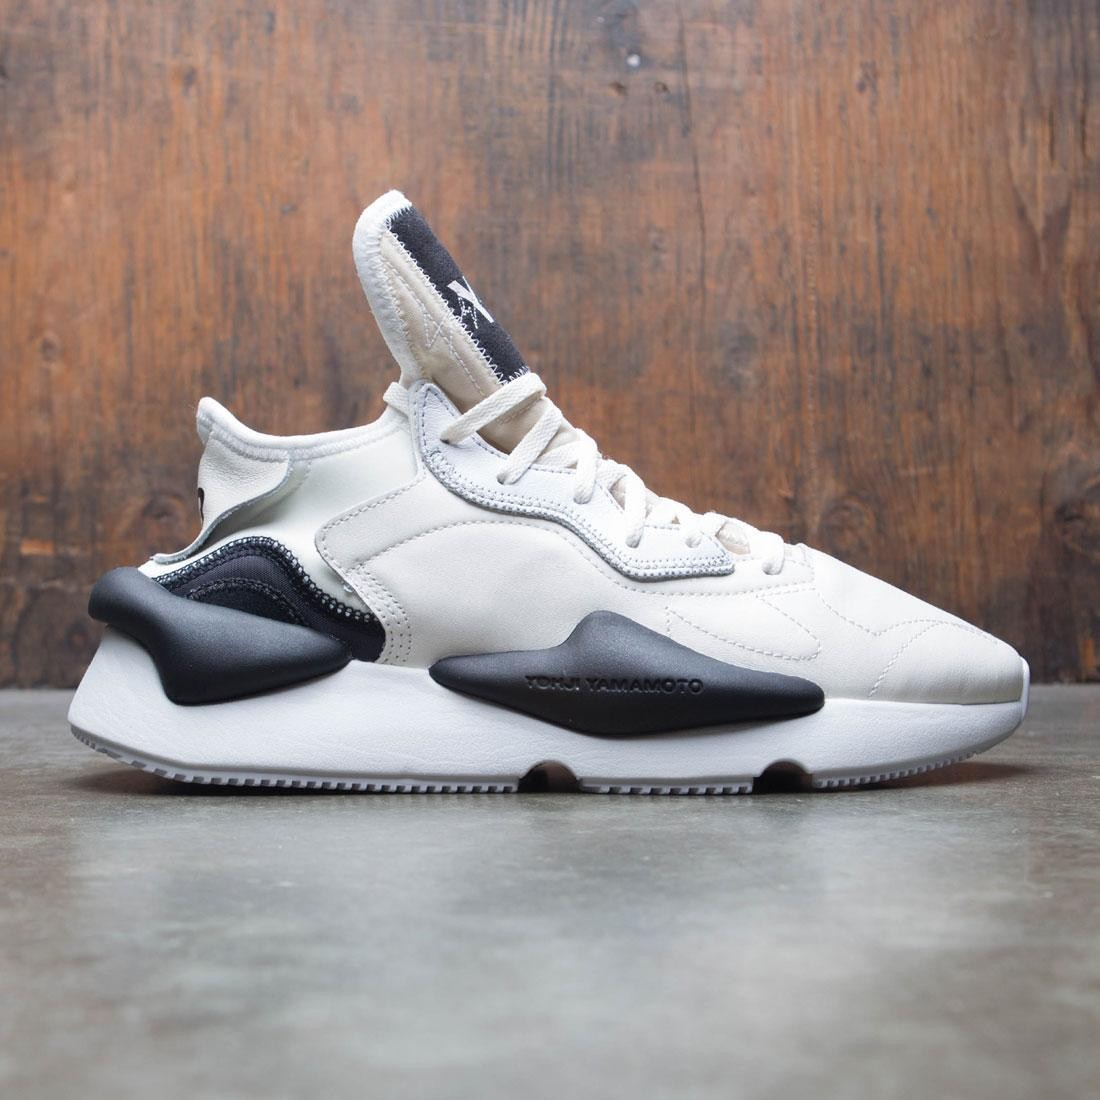 Adidas Y-3 Men Kaiwa (white / footwear white / black)